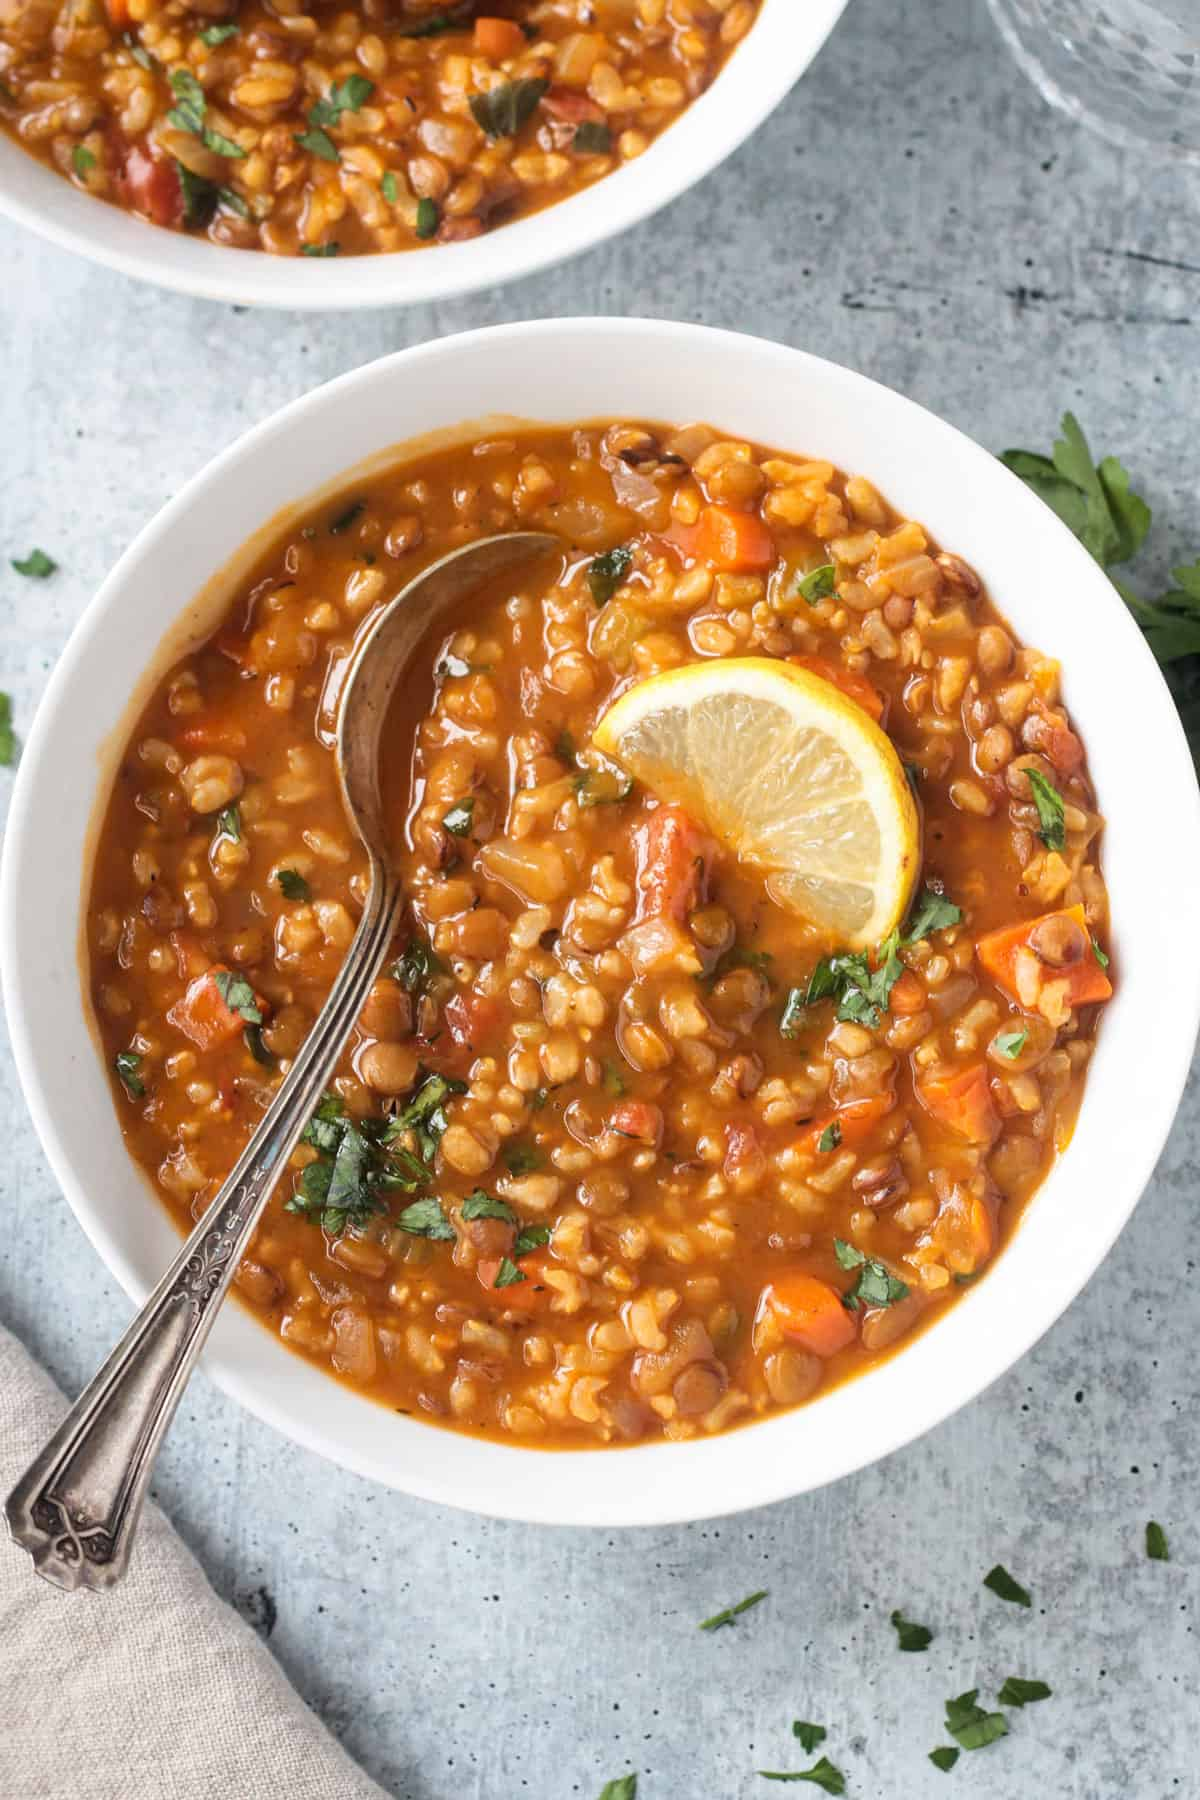 Metal spoon in a bowl of lentil rice soup.